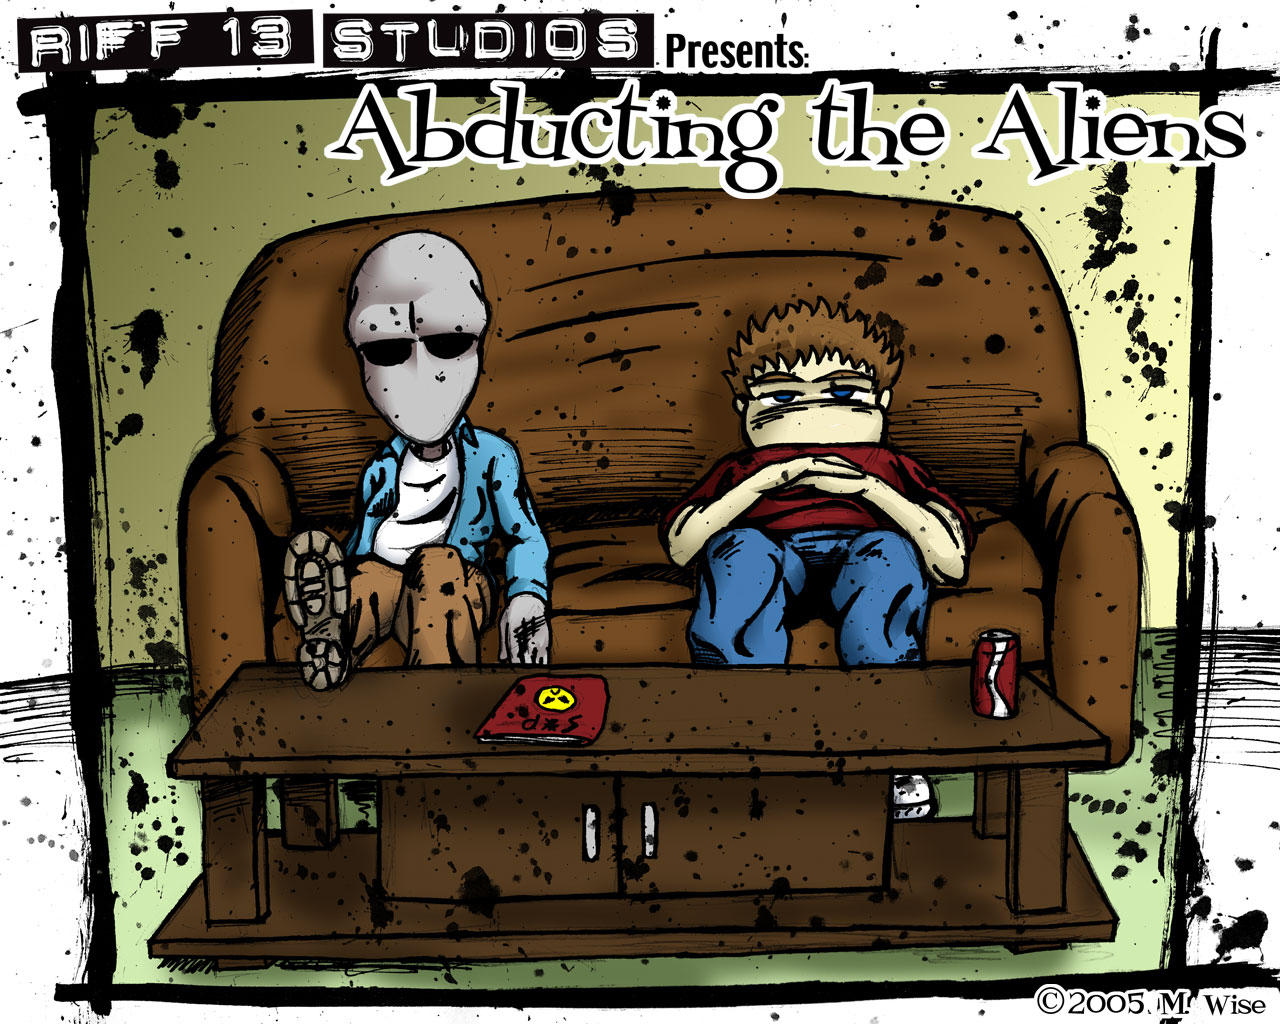 Abducting The Aliens Wallpaper by RiffThirteen